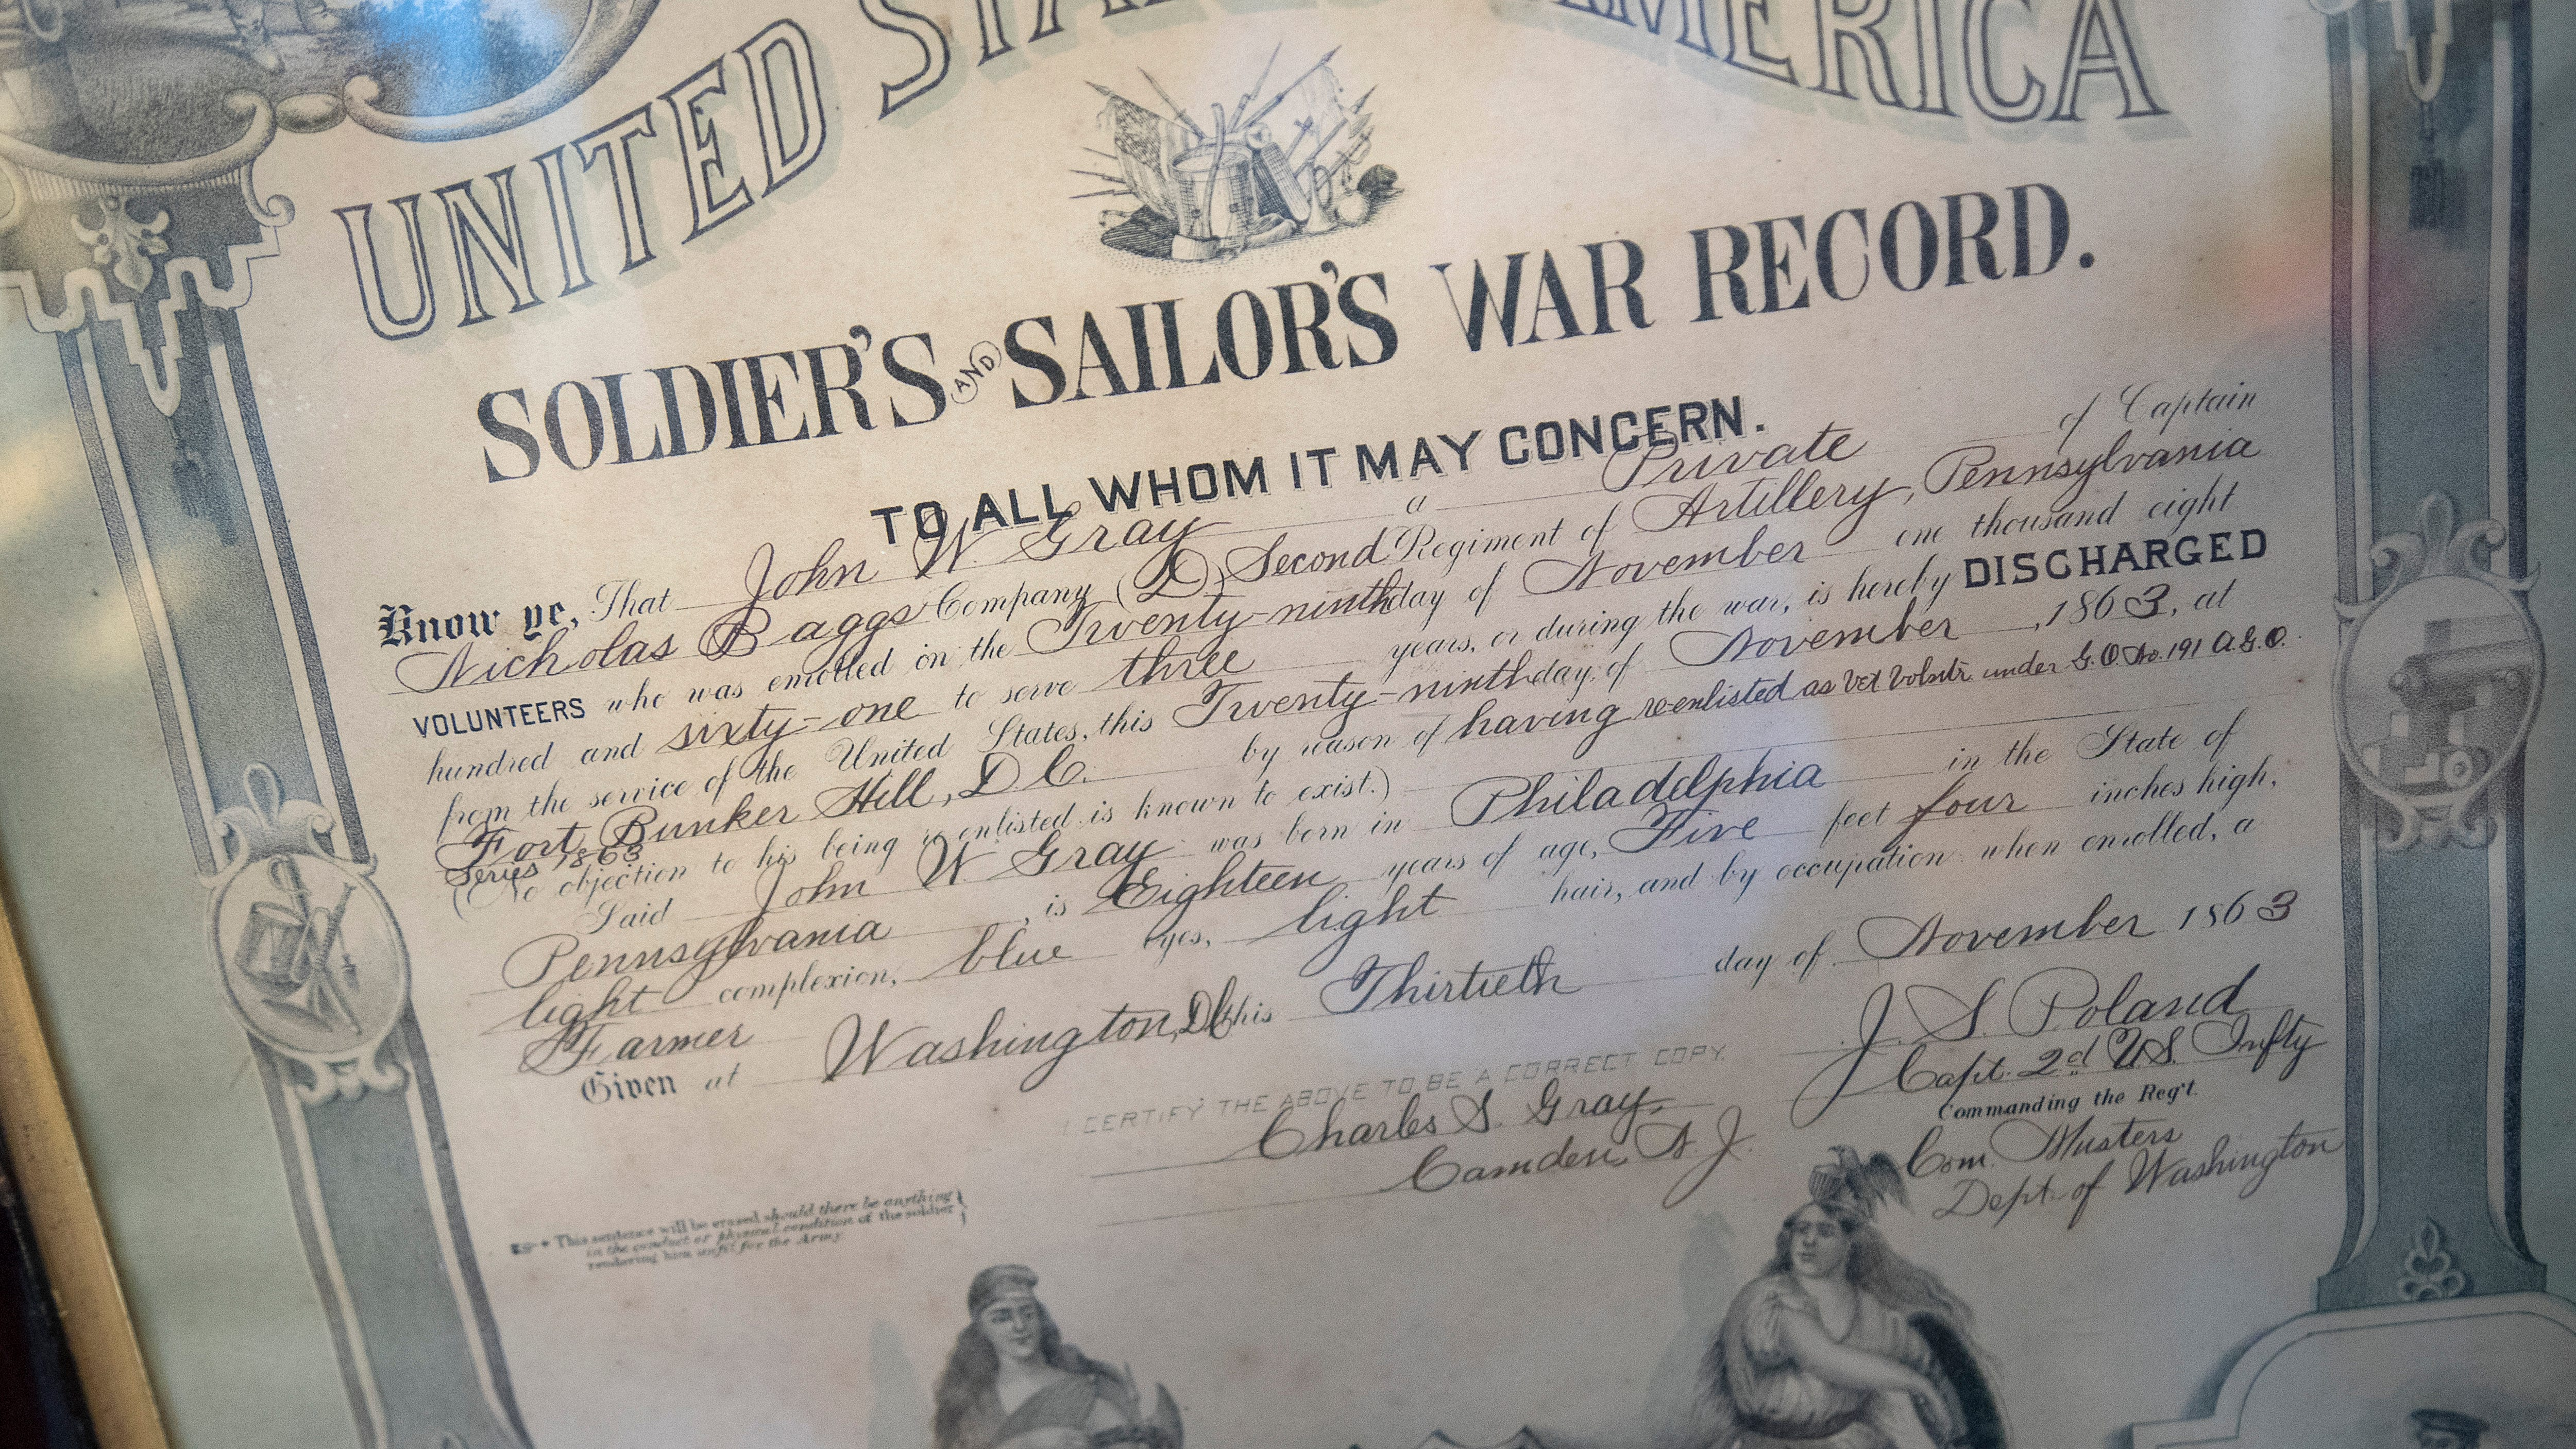 The Civil War record of John W. Gray, the great -great grandfather of John Gray of Fort Myers Beach.